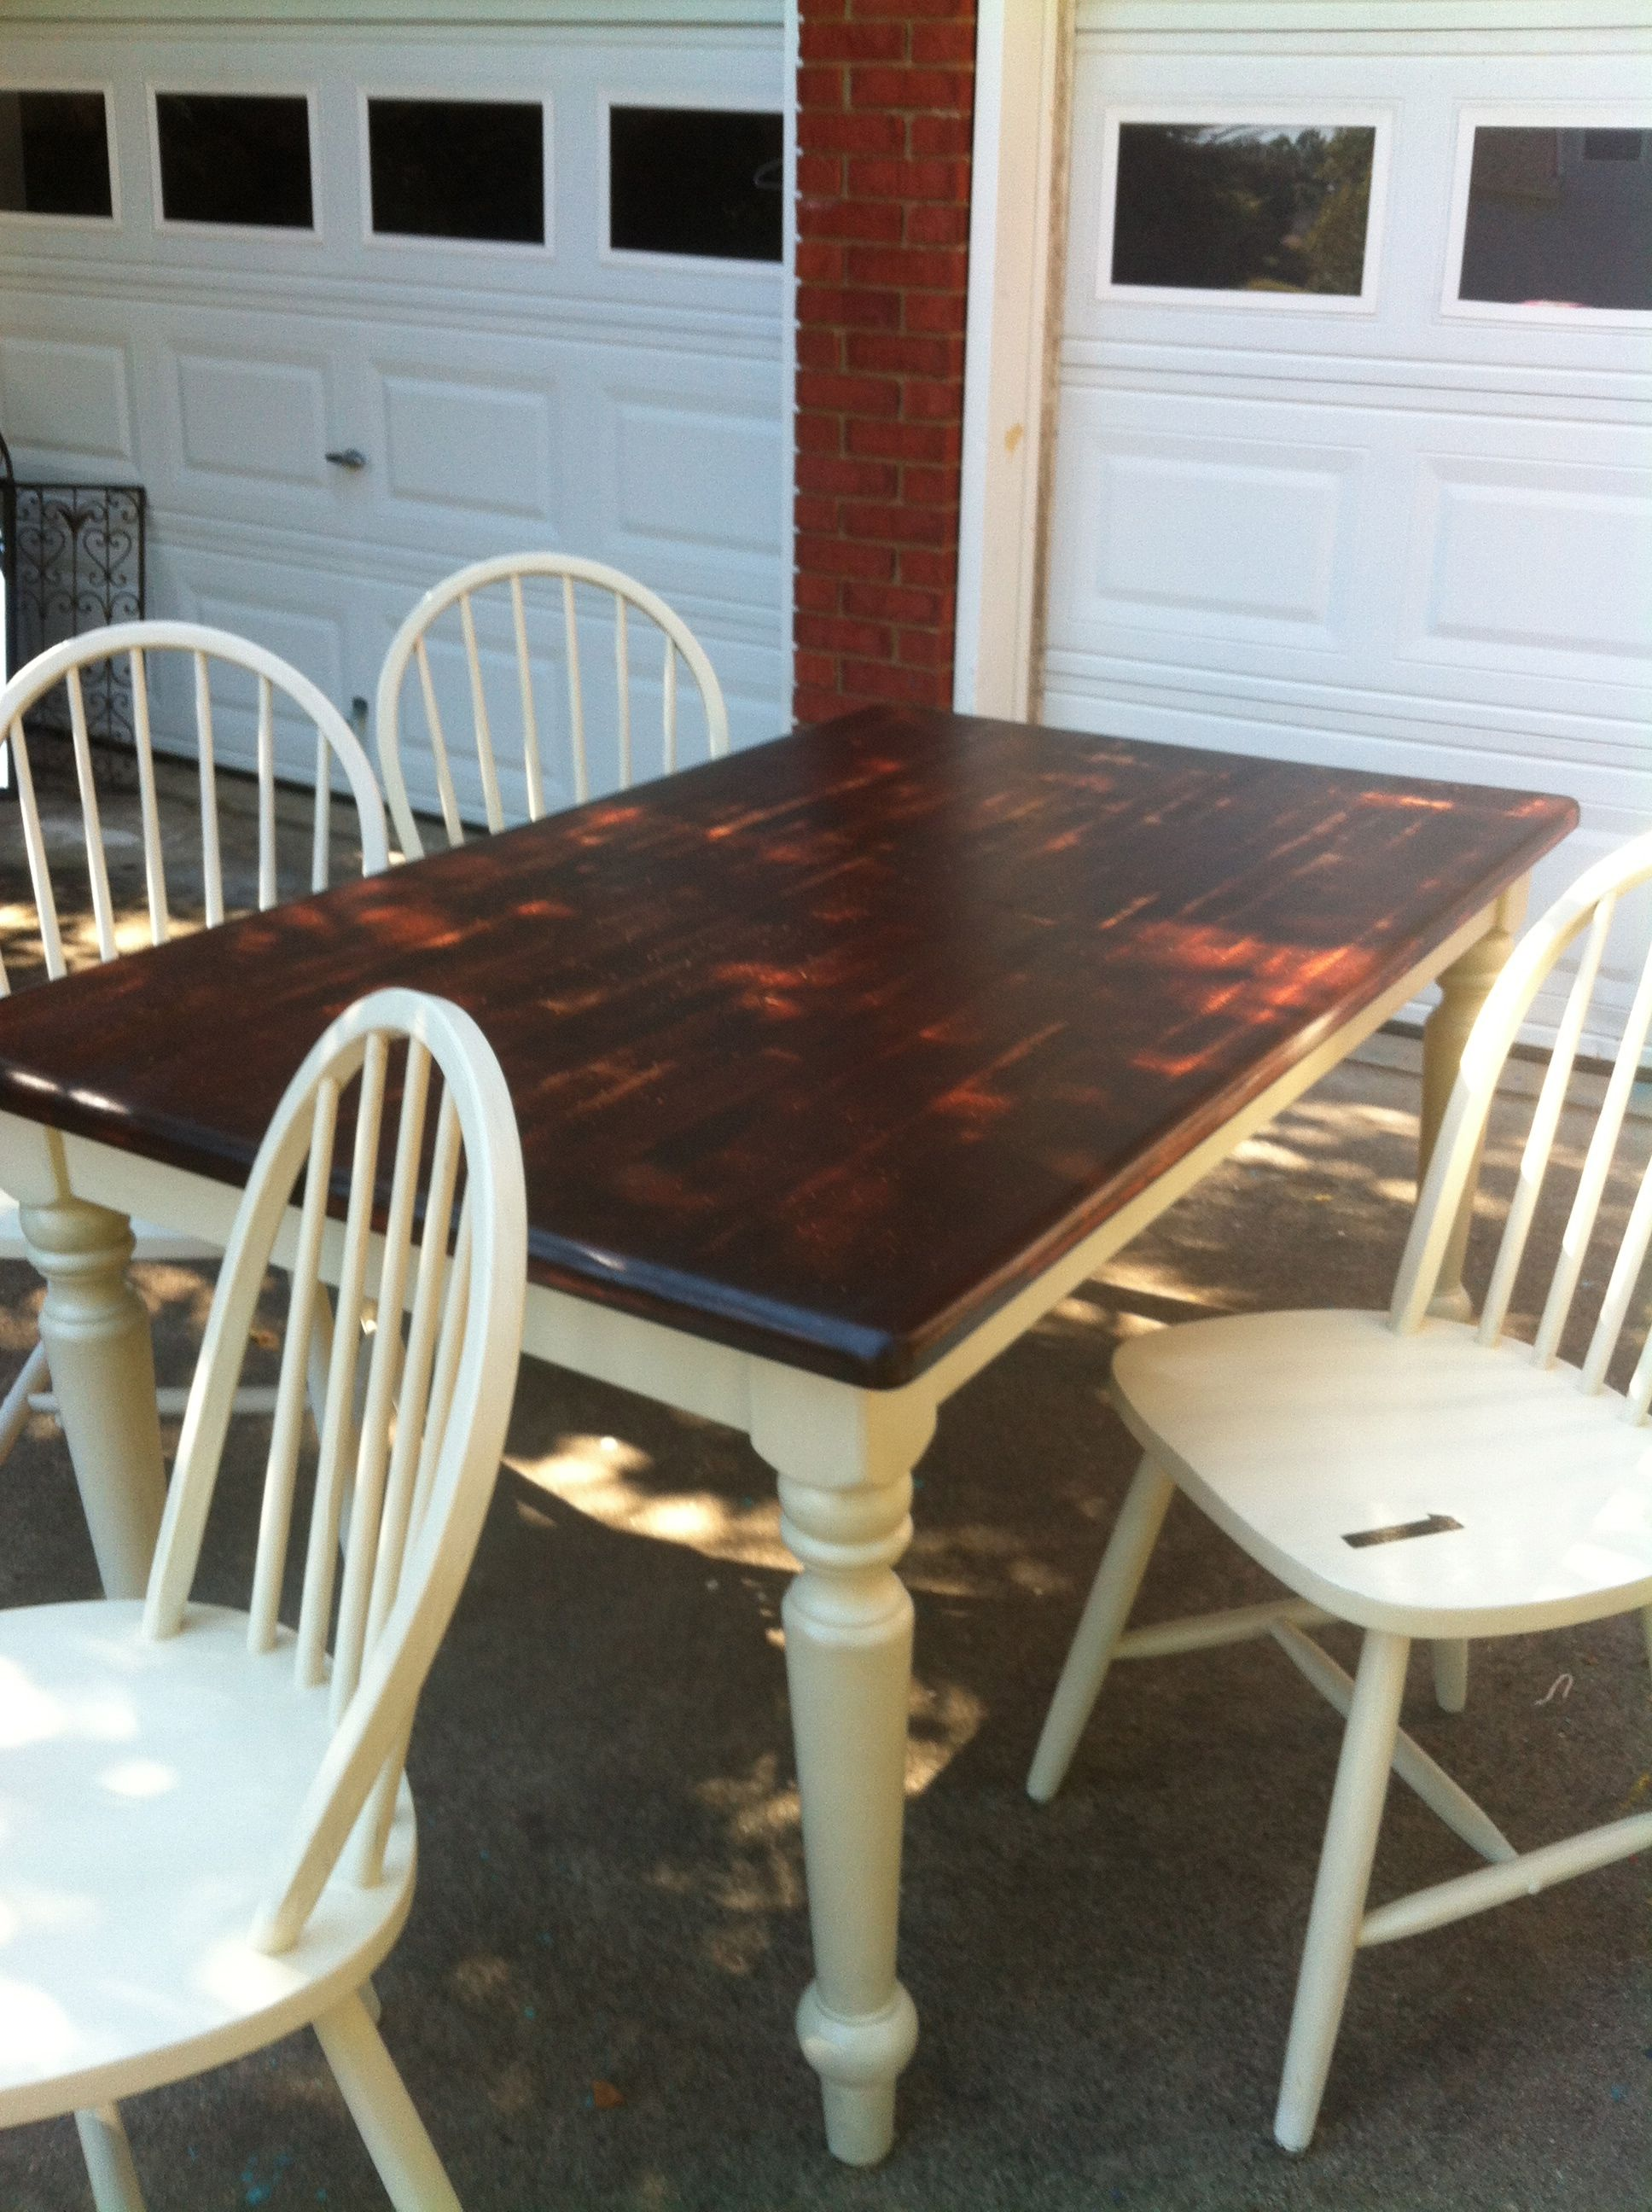 refinished oak table w/mahogany stain top and cream legs | now in